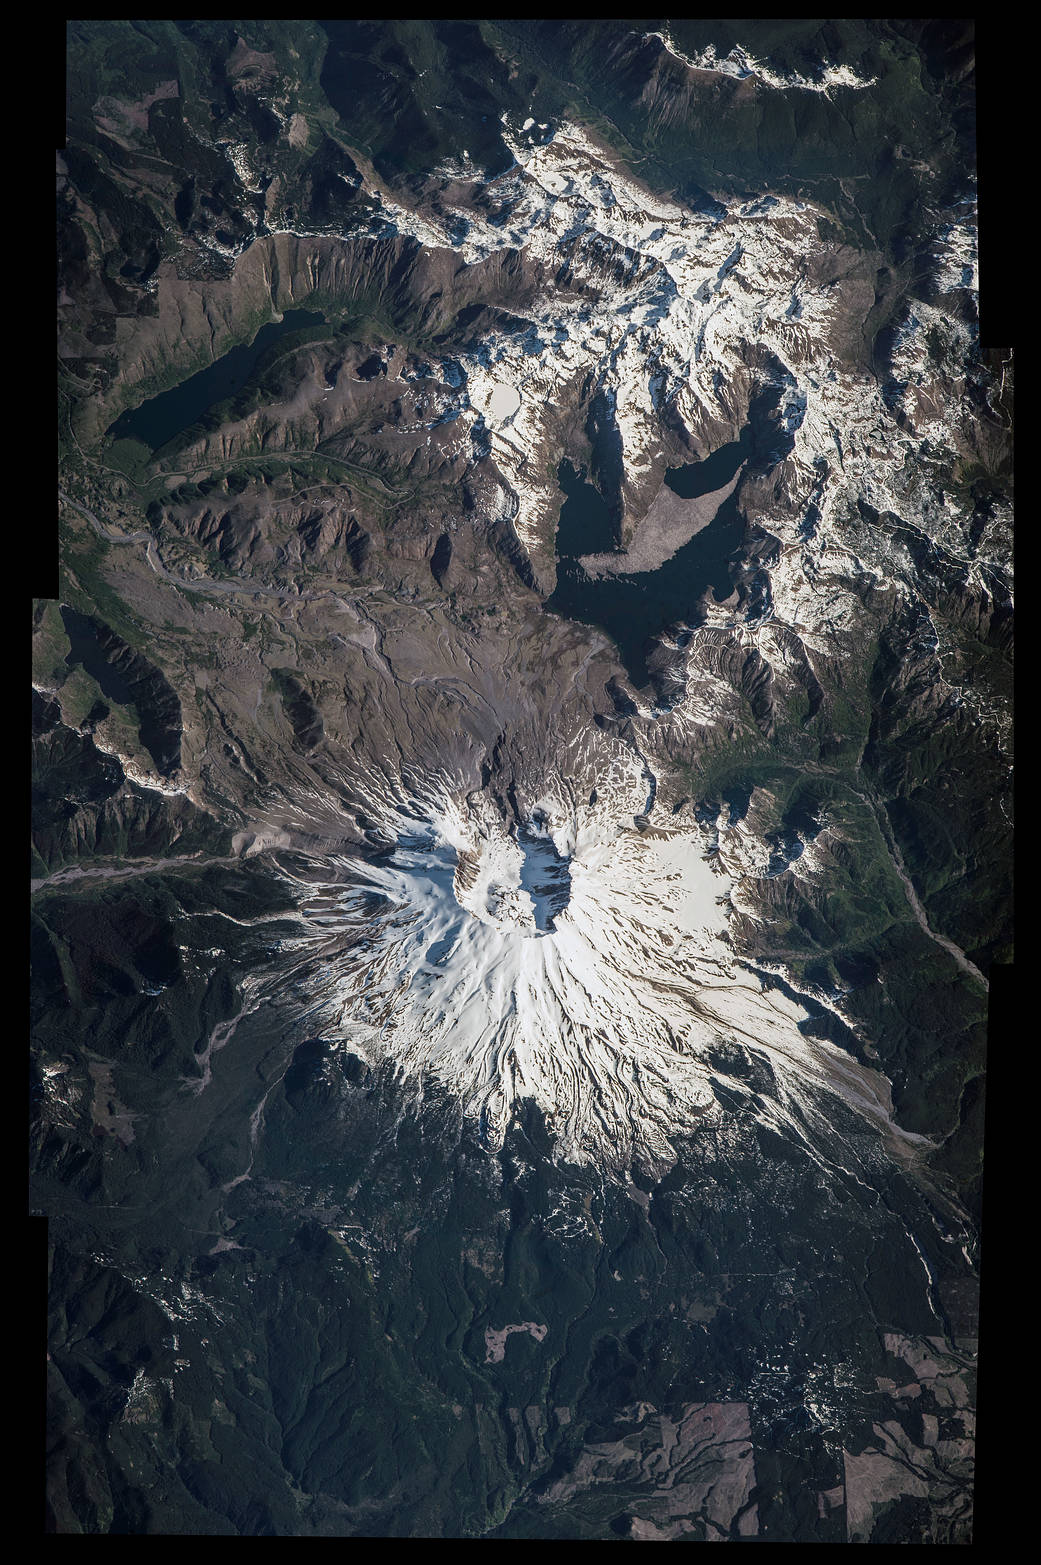 Mount St. Helens National Volcanic Monument from ISS